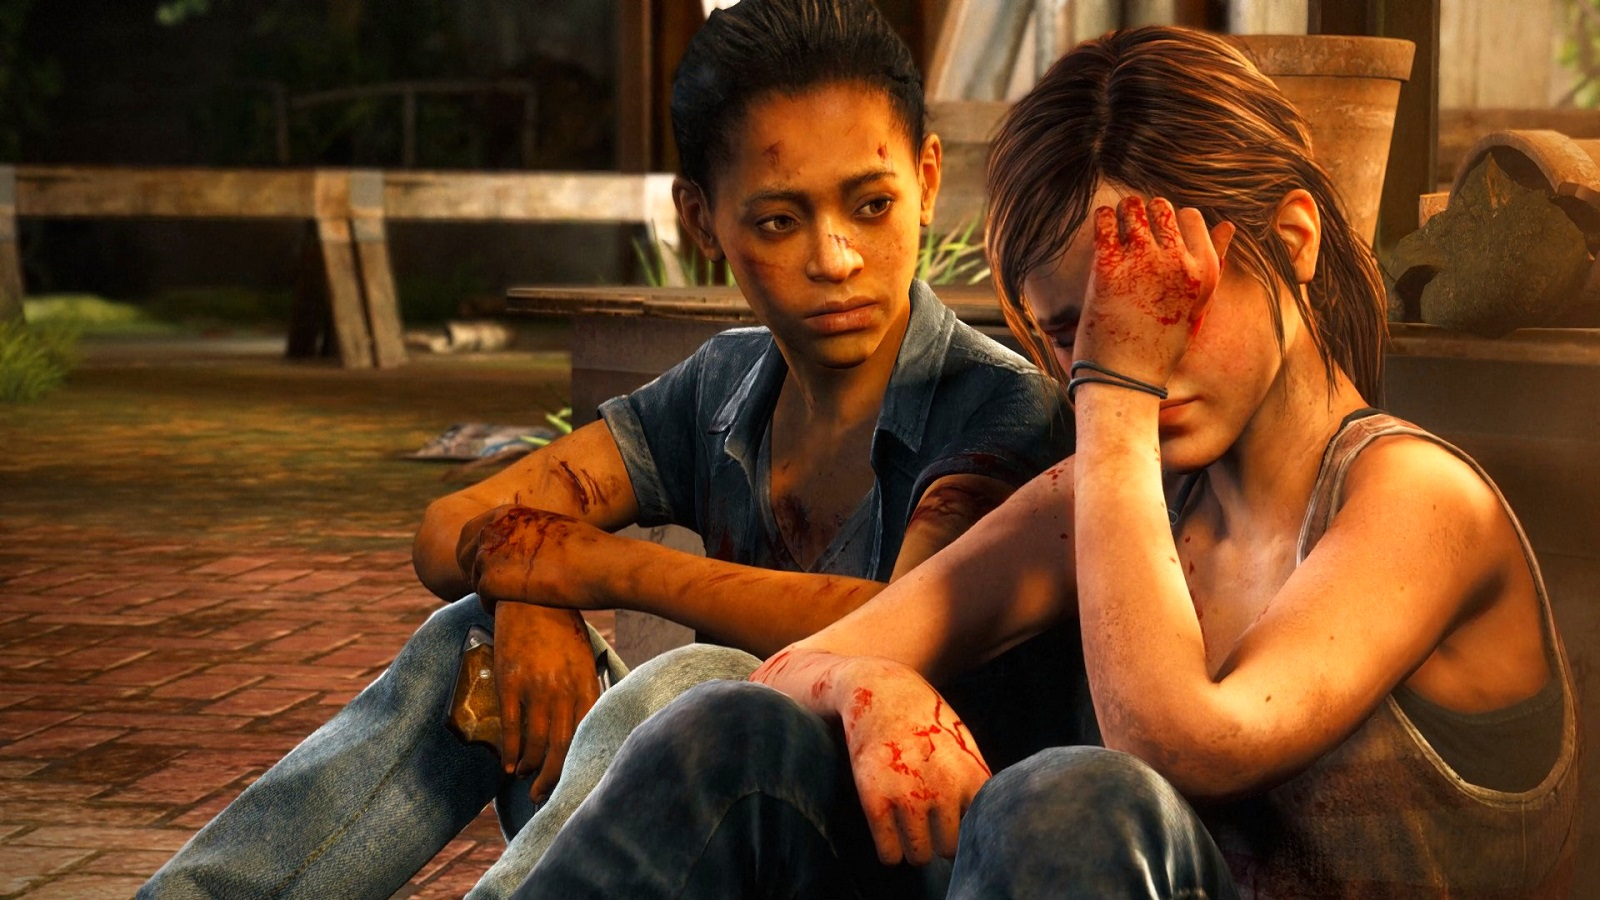 И PS5 не пригодилась: новый патч ускорил загрузки в ремастере The Last of Us более чем на 70 %